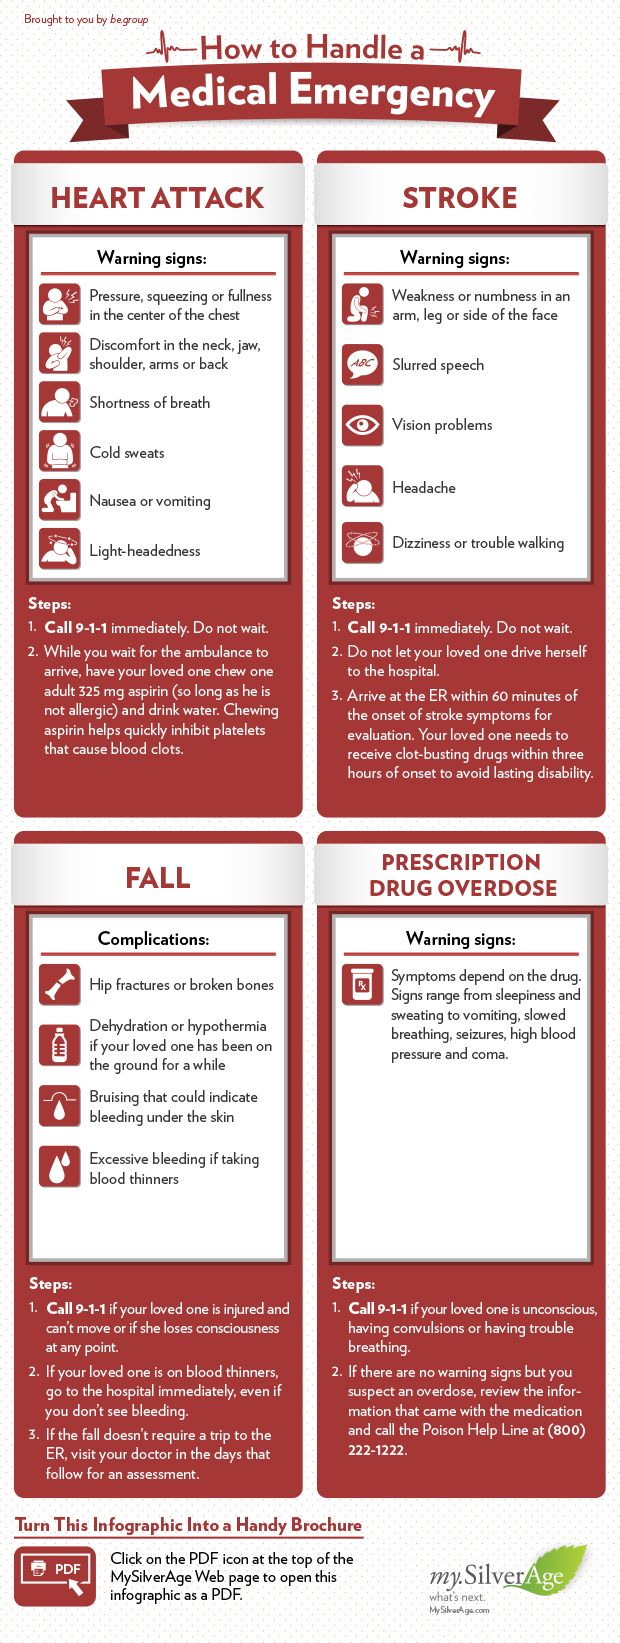 Infographic Showing Steps for Handling Medical Emergencies http://tmiky.com/pinterest